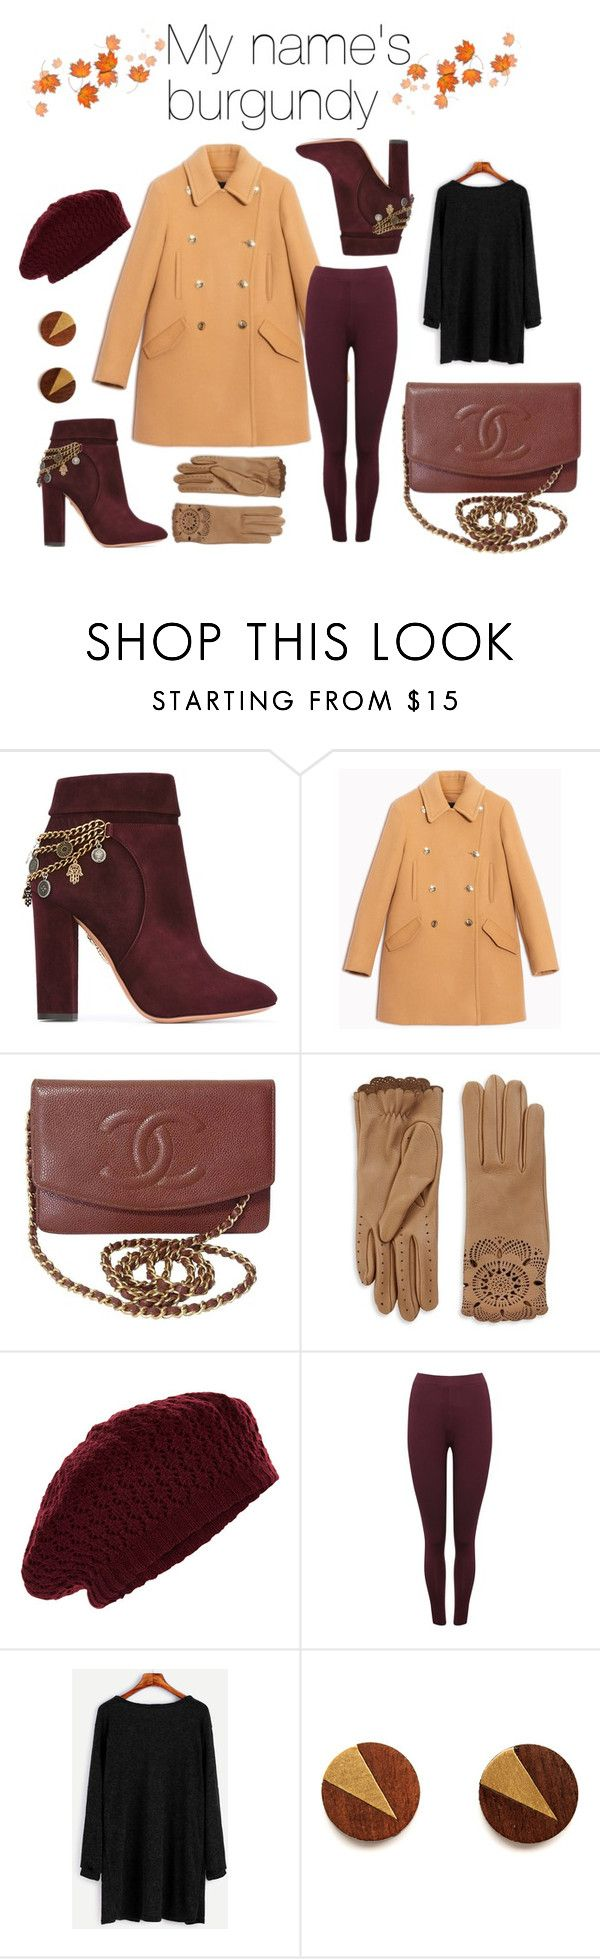 my name's burgundy by ann1714 on Polyvore featuring moda, Max&Co., M&Co, Aquazzura, Chanel, Burberry and Accessorize